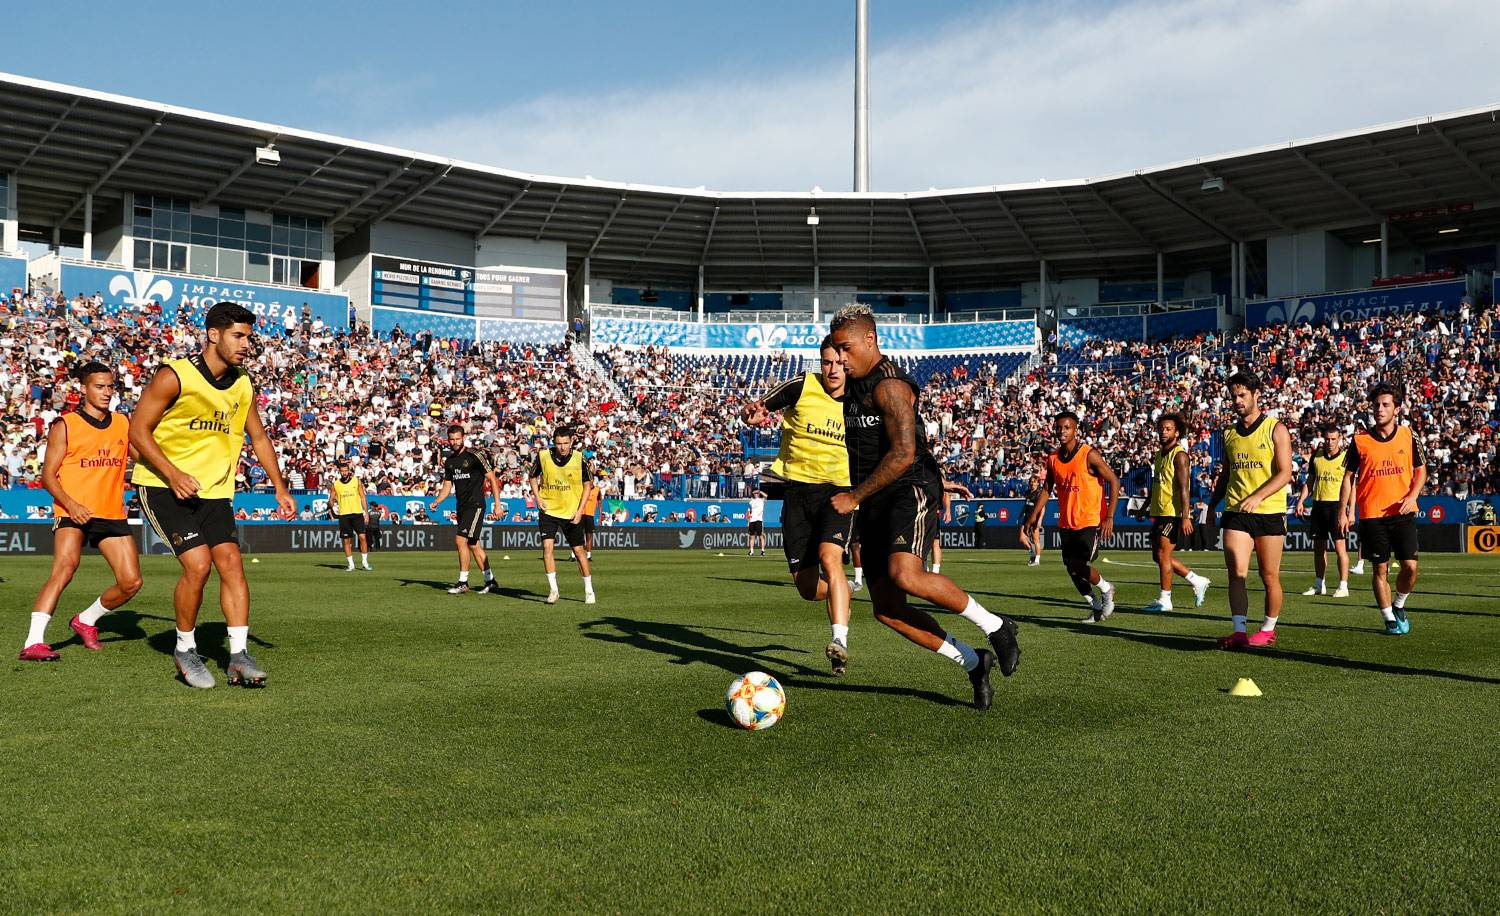 Real Madrid - Entrenamiento del Real Madrid en Montreal - 18-07-2019